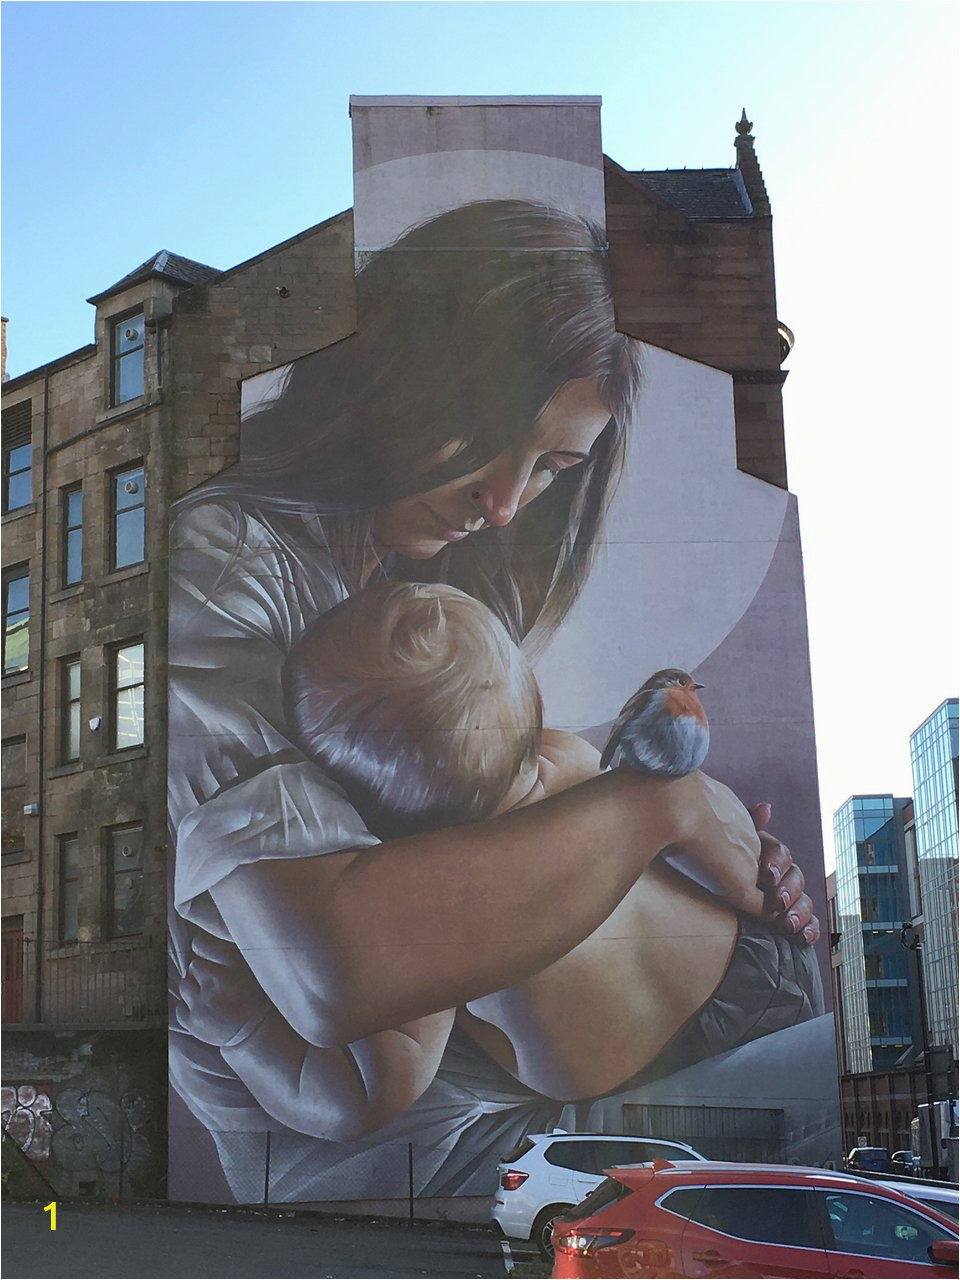 st enoch and child mural